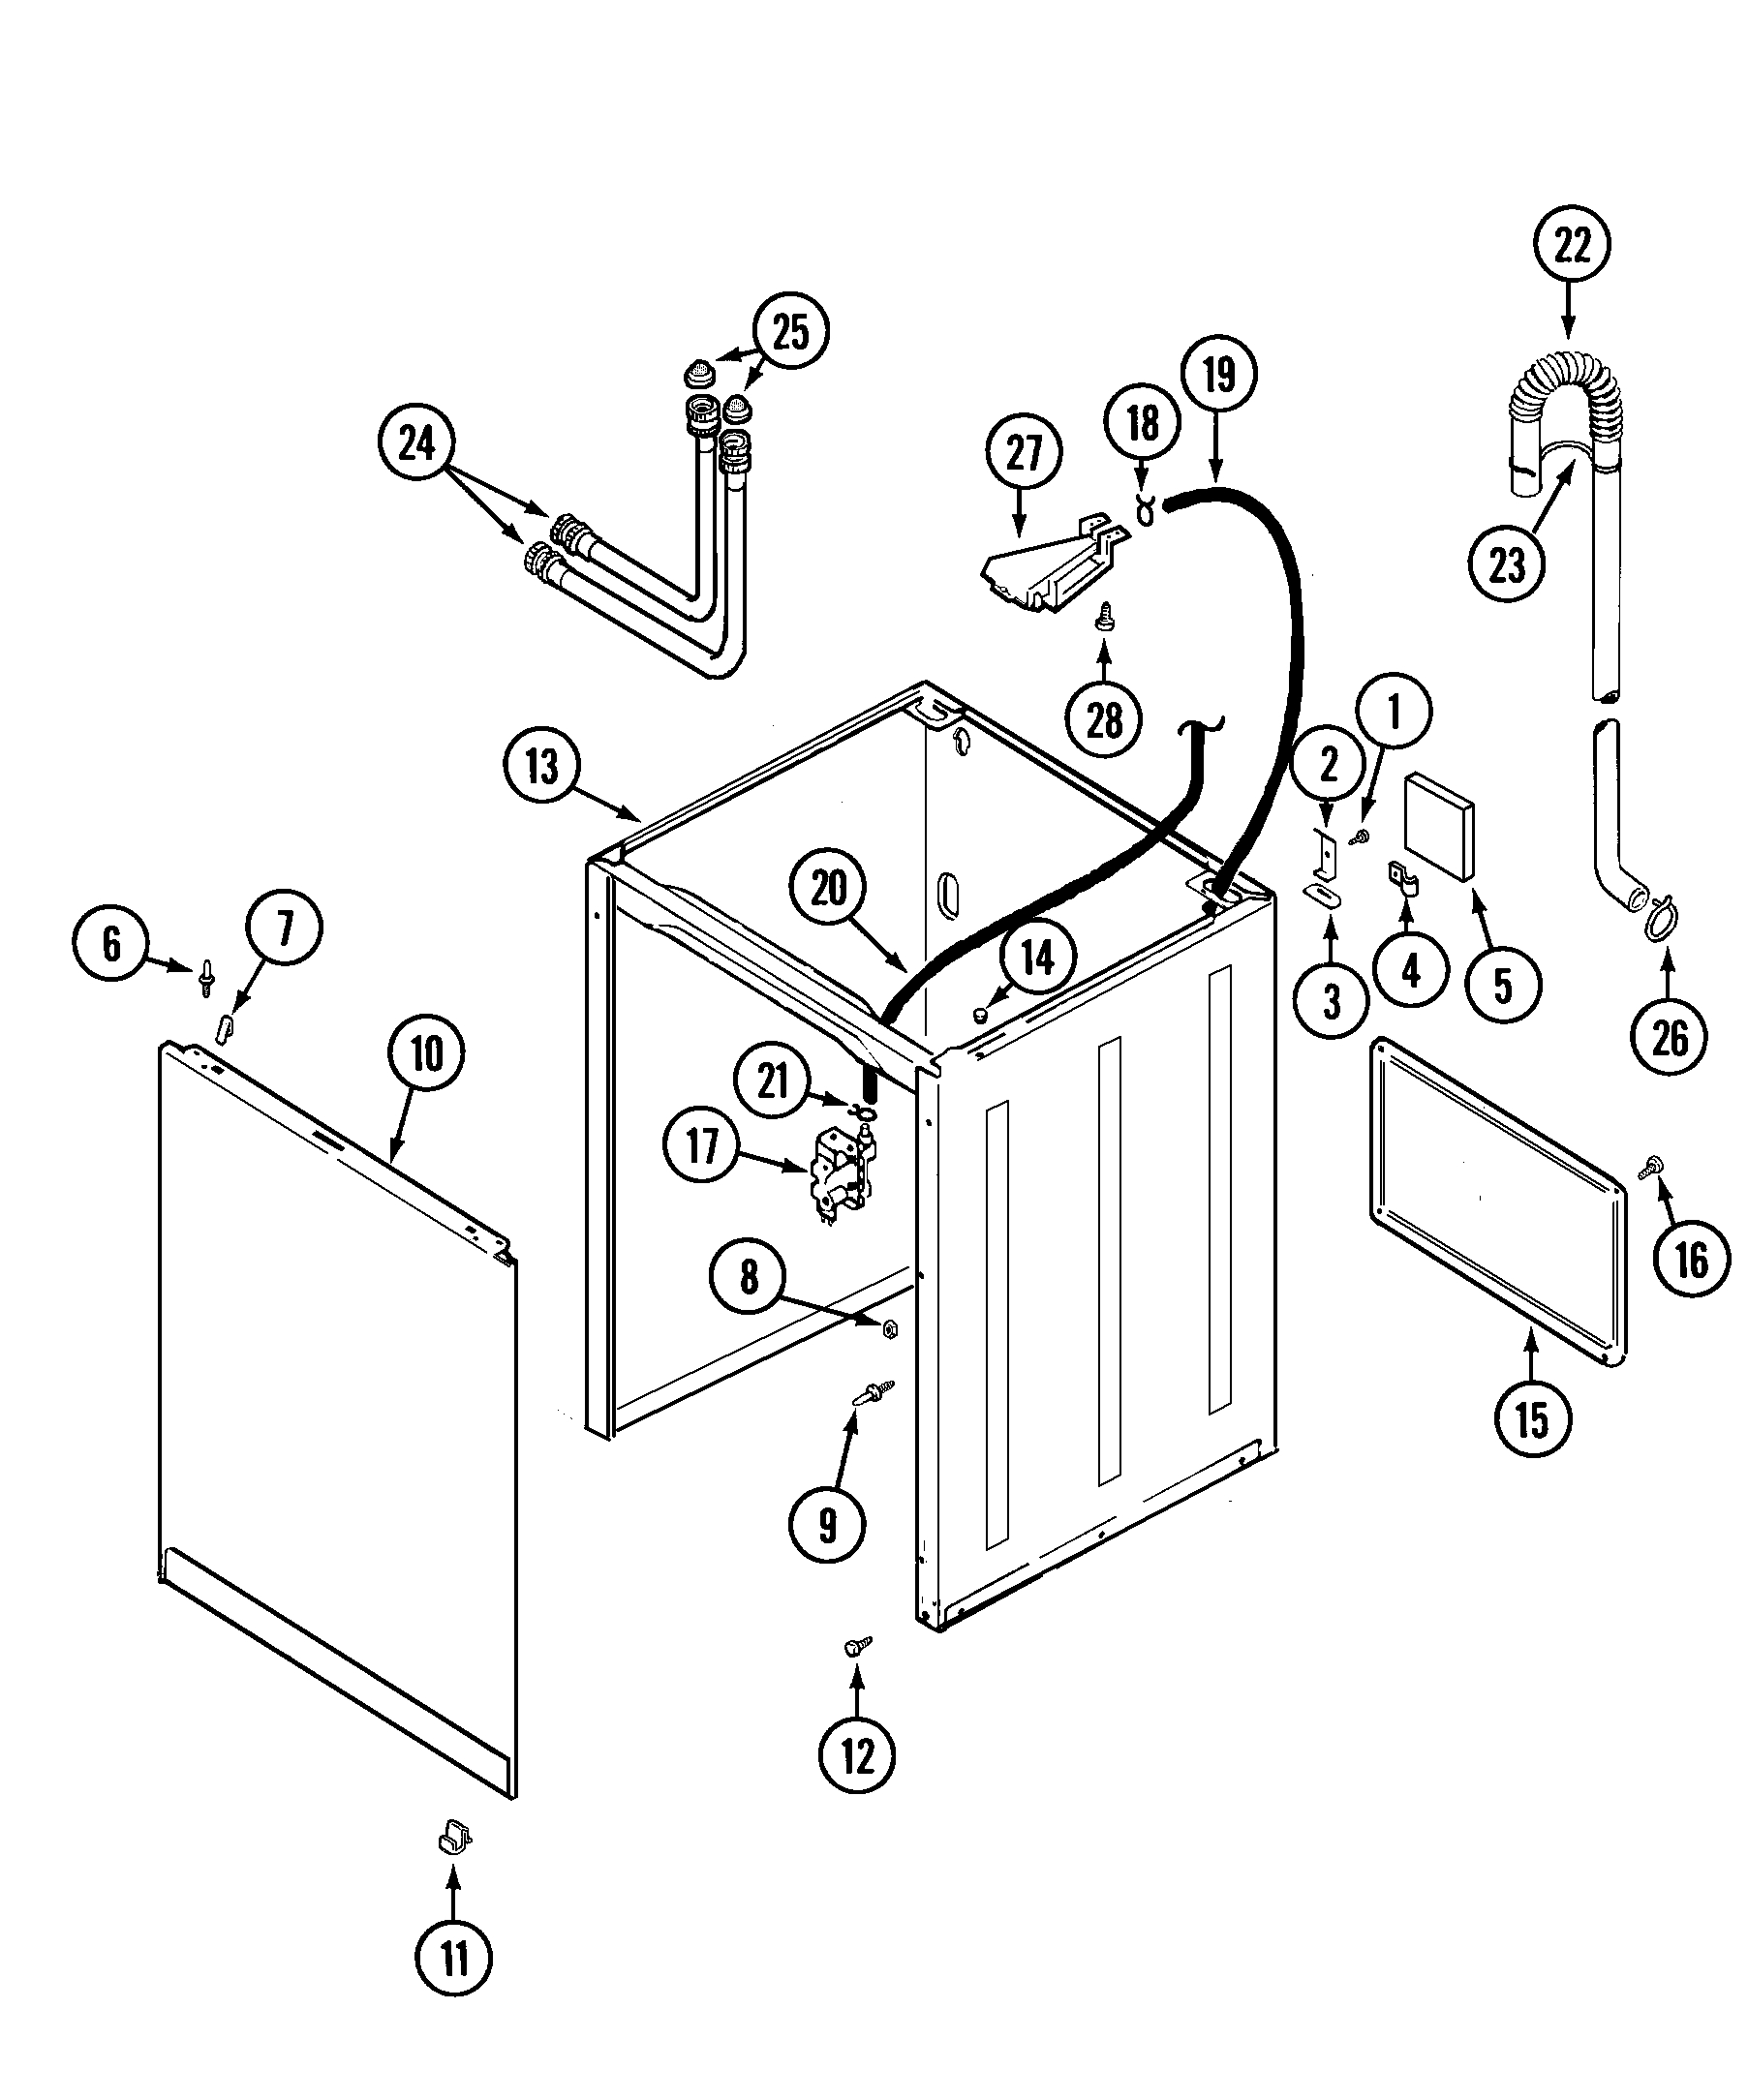 admiral dryer wiring diagram Download-Admiral Dryer Parts Diagram Best Admiral Model Lnc6764a71 Residential Washers Genuine Parts 3-k